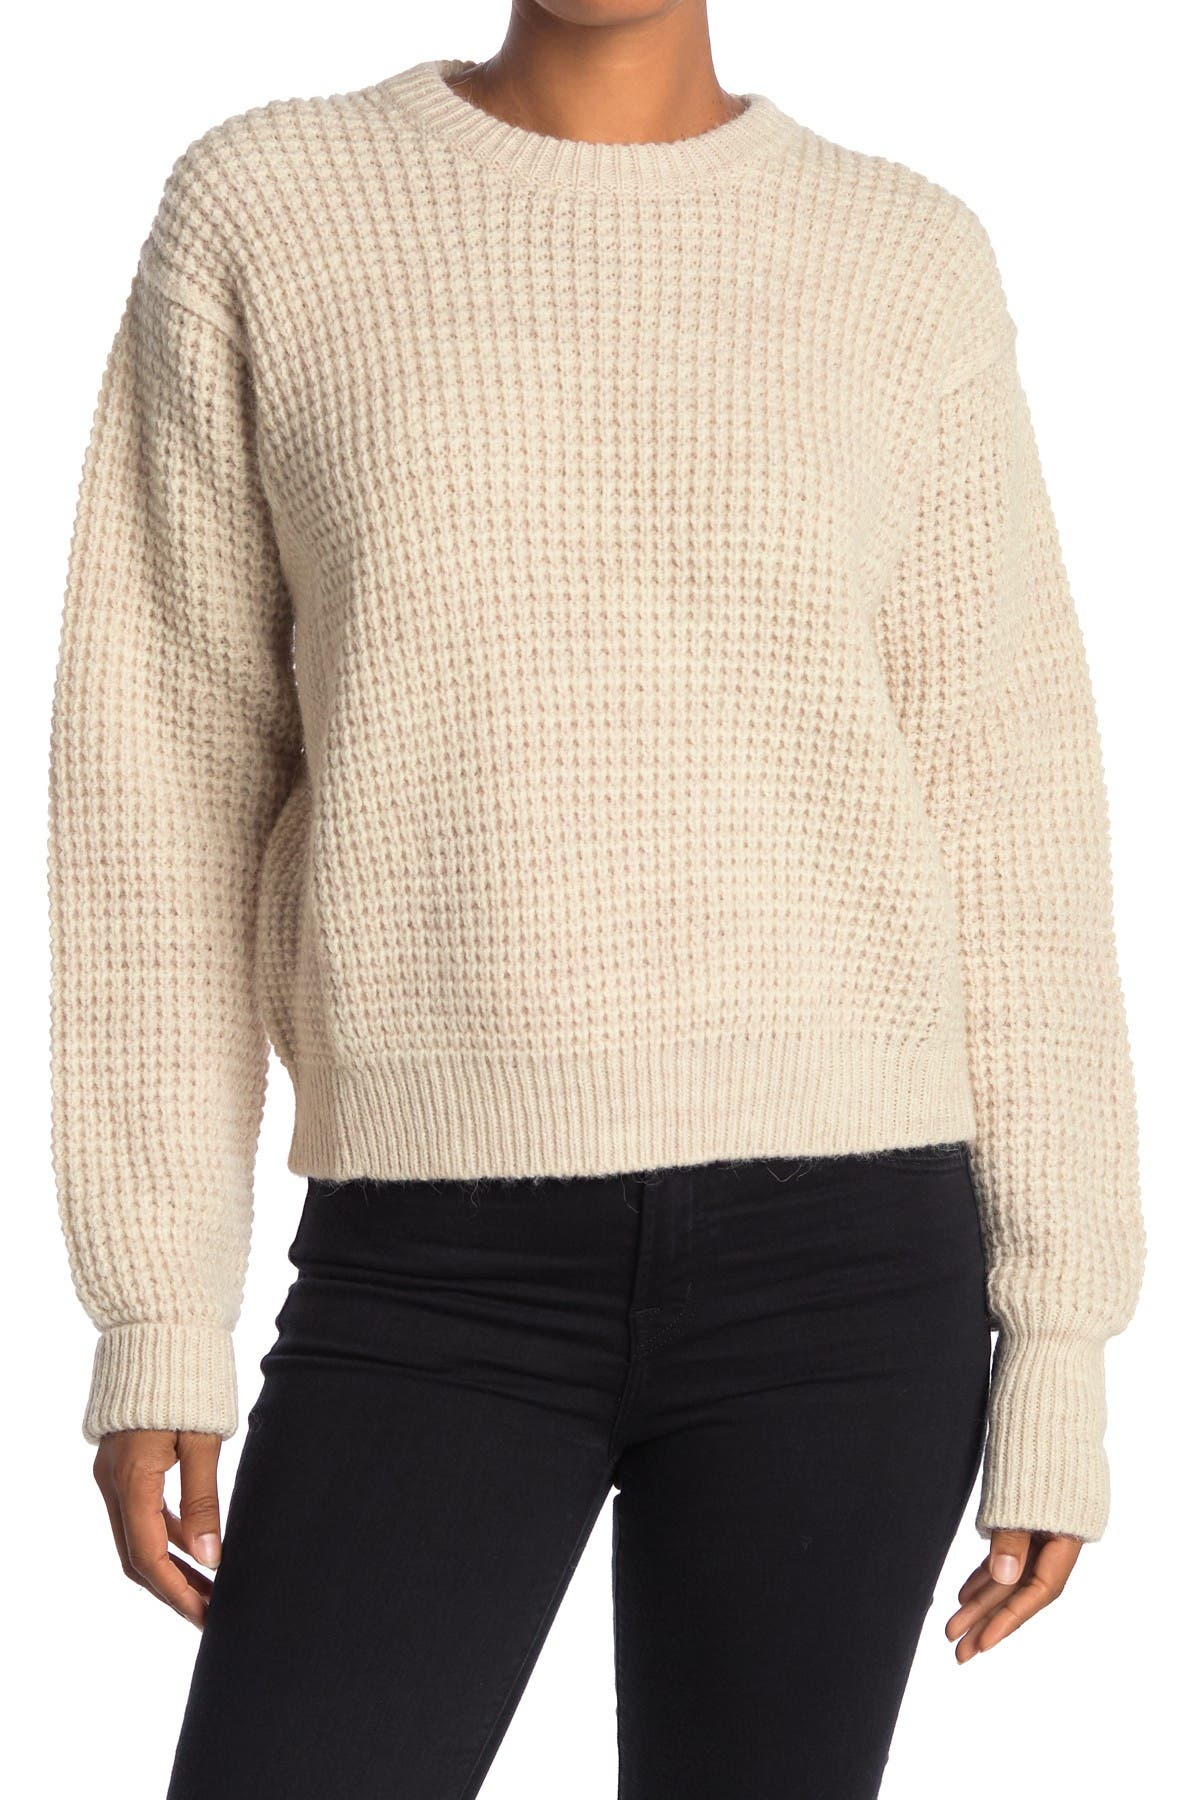 Image of Zadig & Voltaire Kary Waffle Knit Boxy Sweater